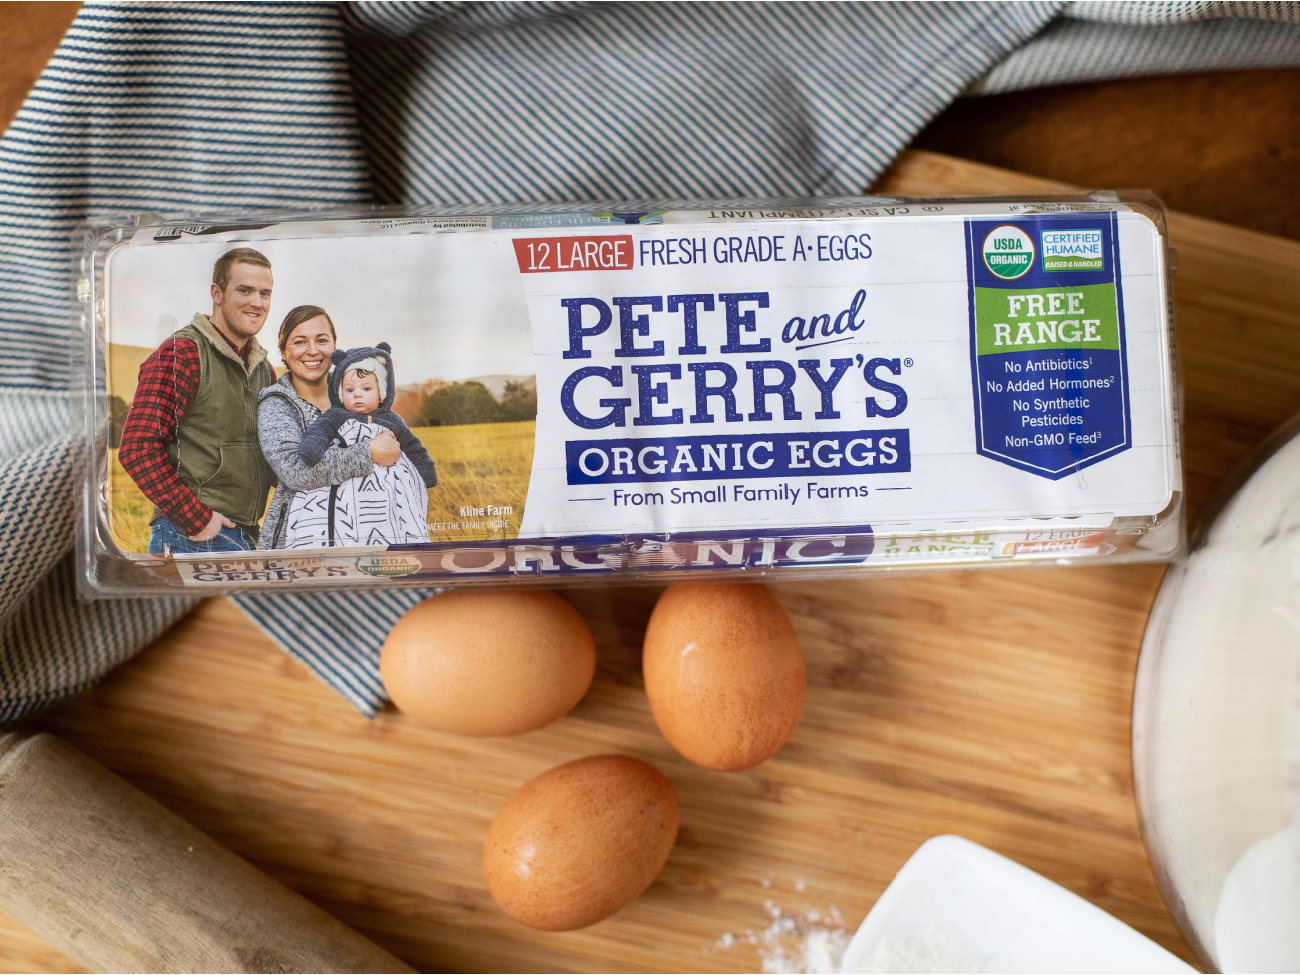 Pete And Gerry's Organic Brown Eggs Just $2.99 At Publix on I Heart Publix